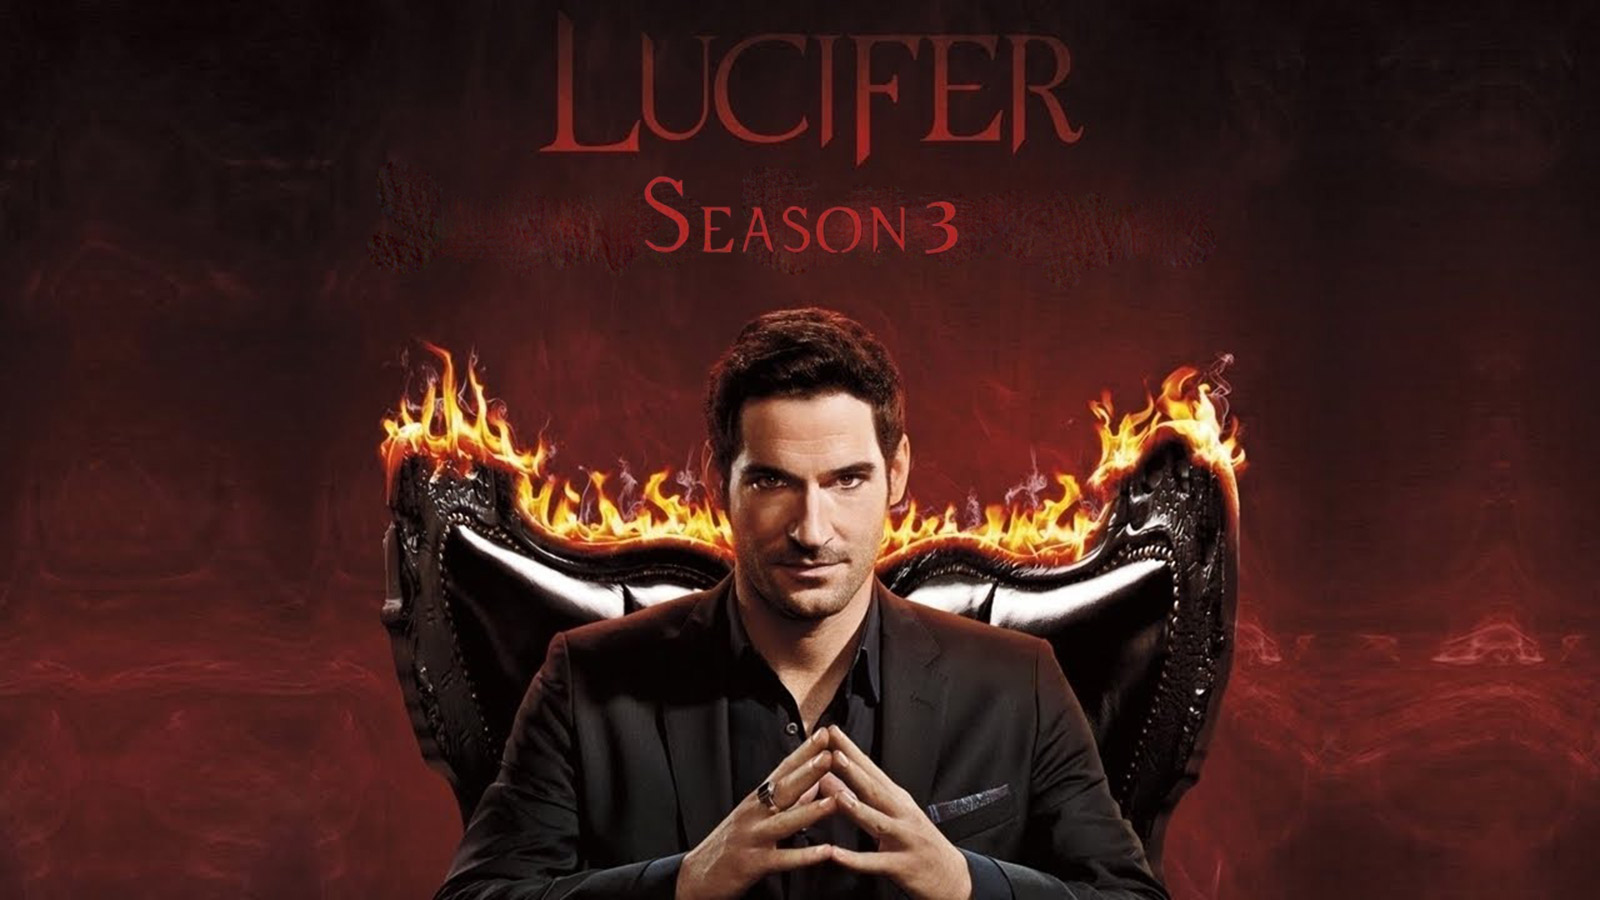 Lucifer Season 3: Episode 5 Promo And Summary